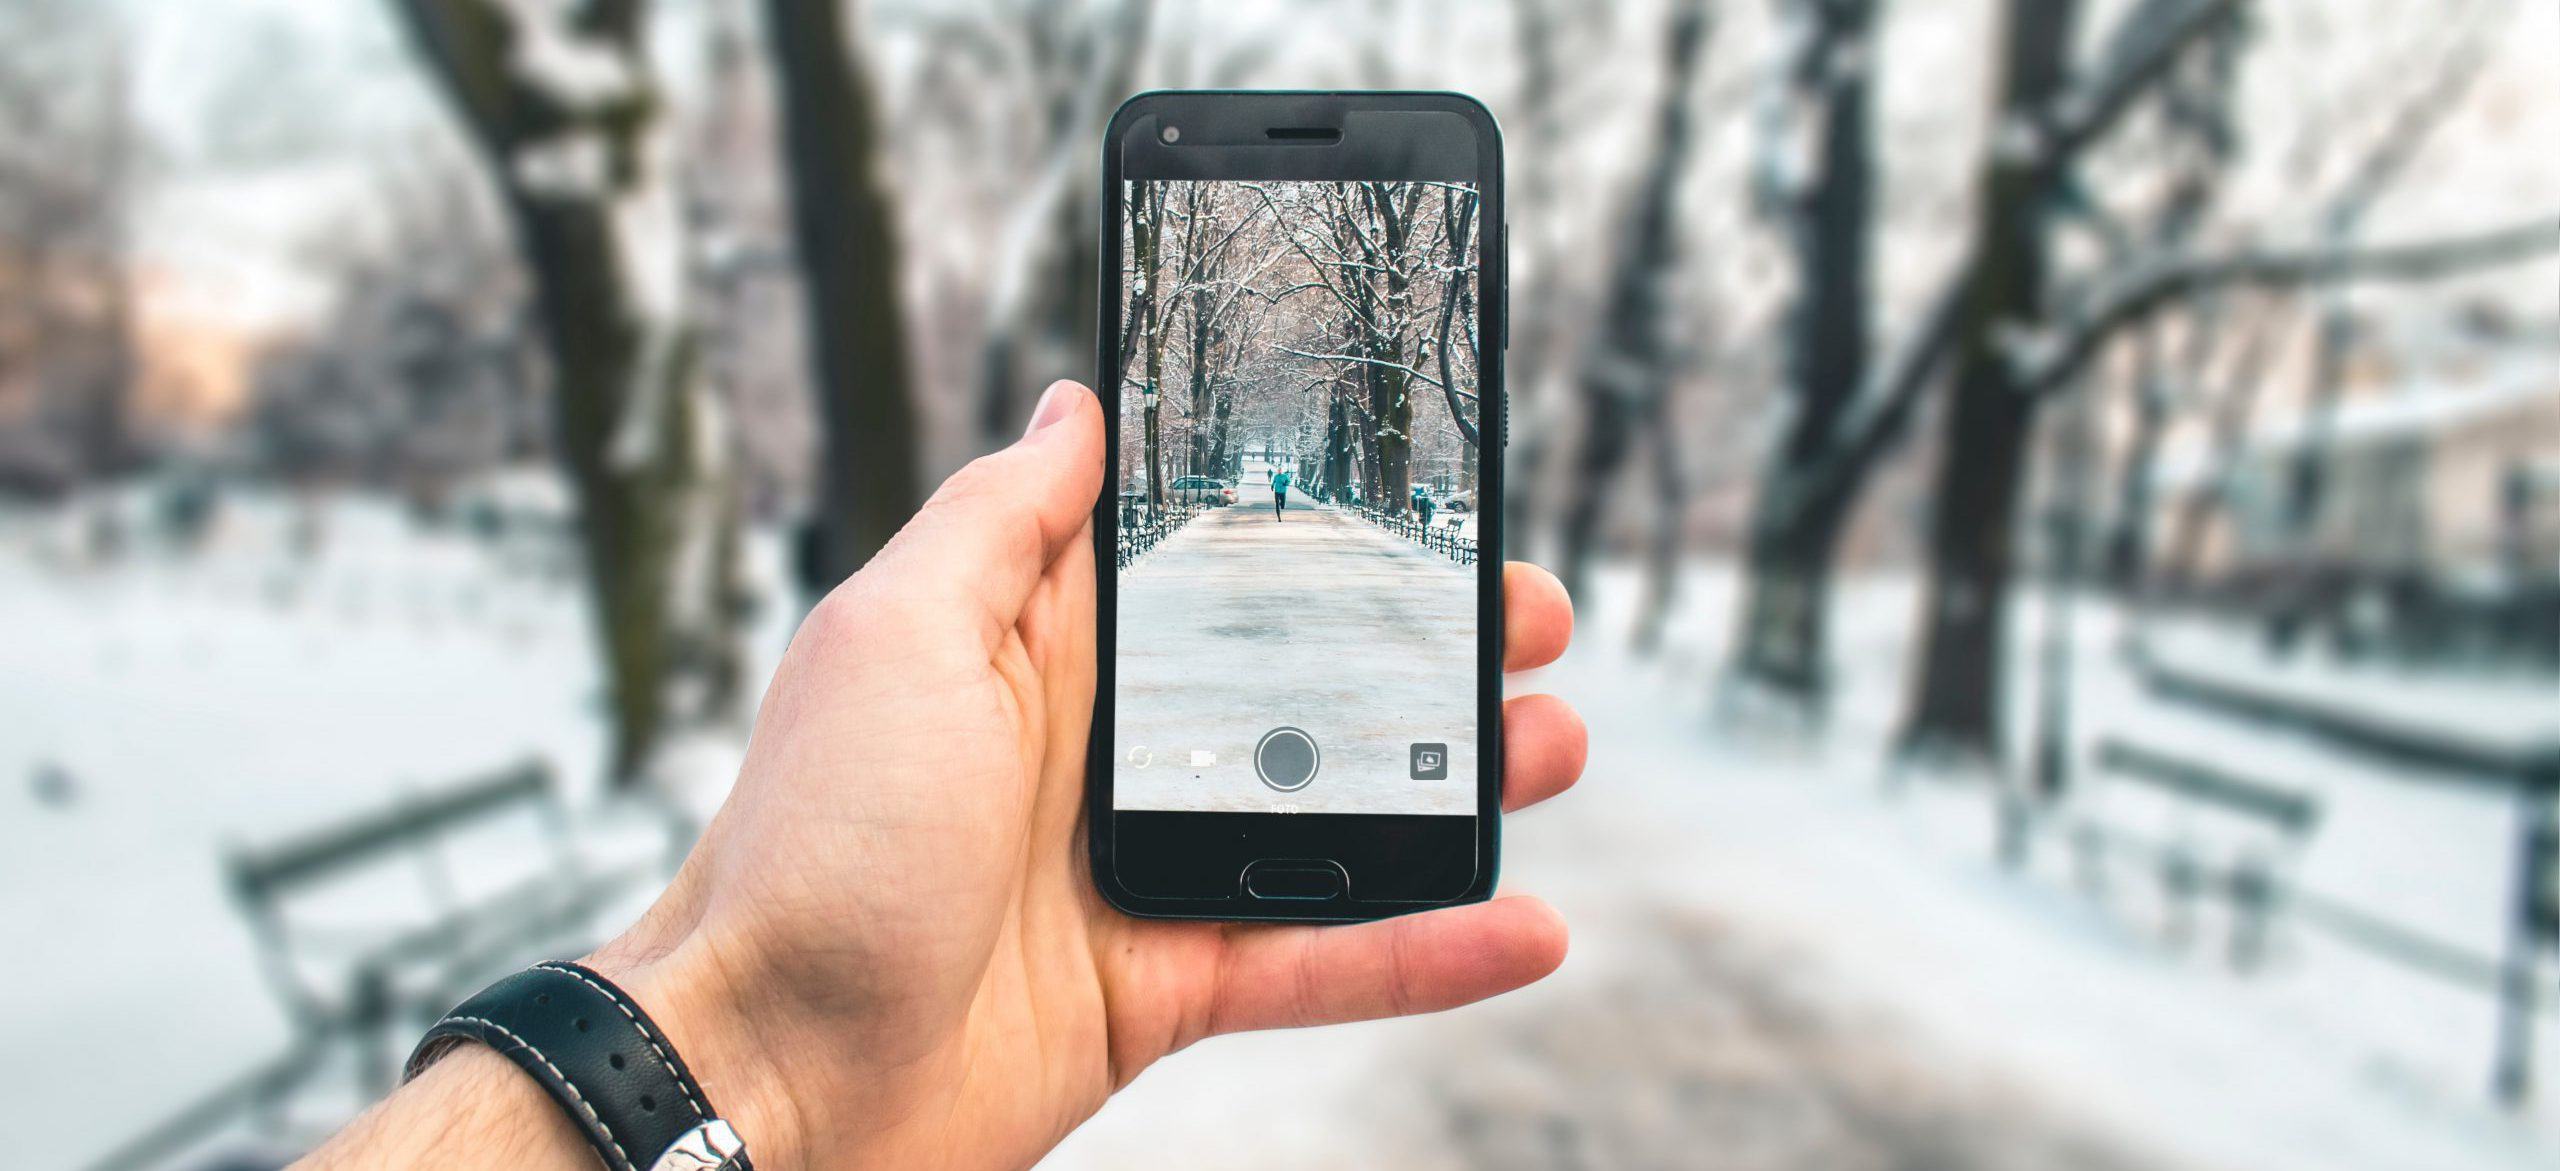 7 tips to make the most out of your smartphone in cold weather.